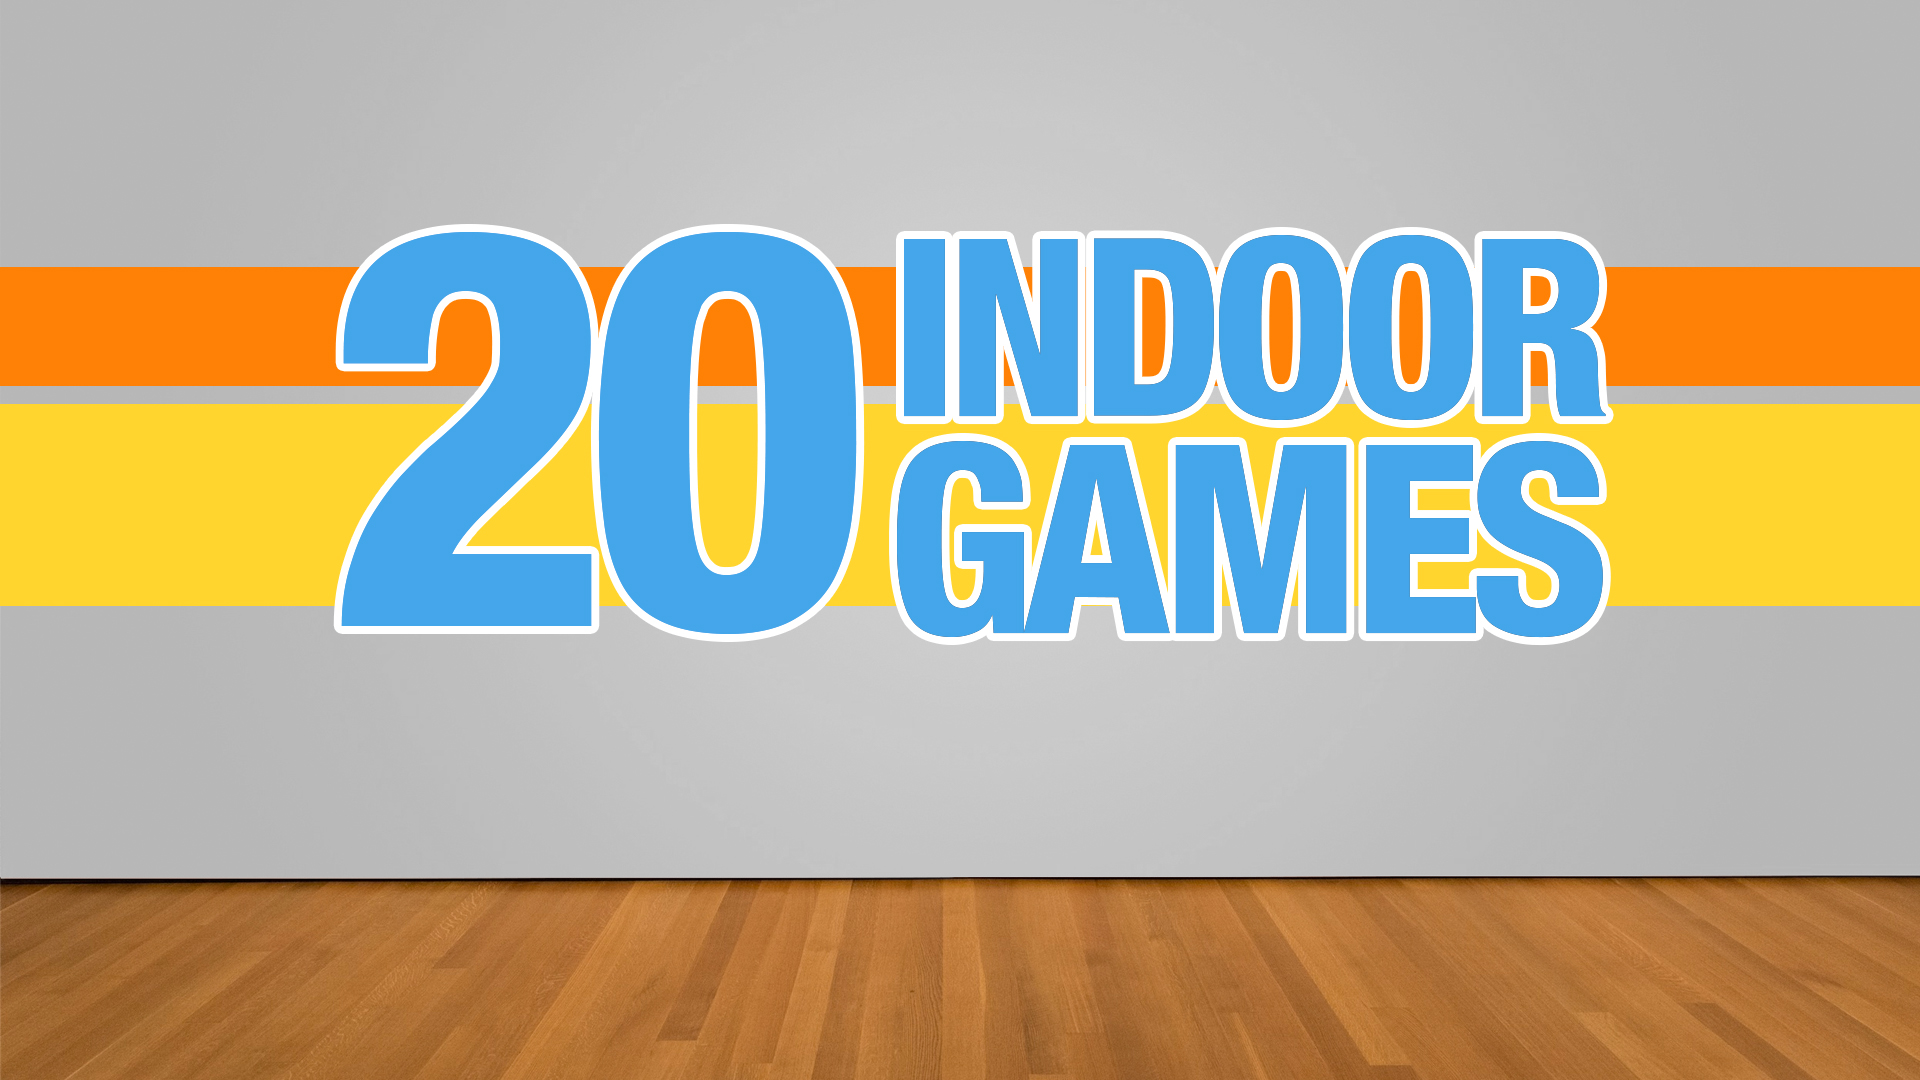 F – 20 Indoor Games